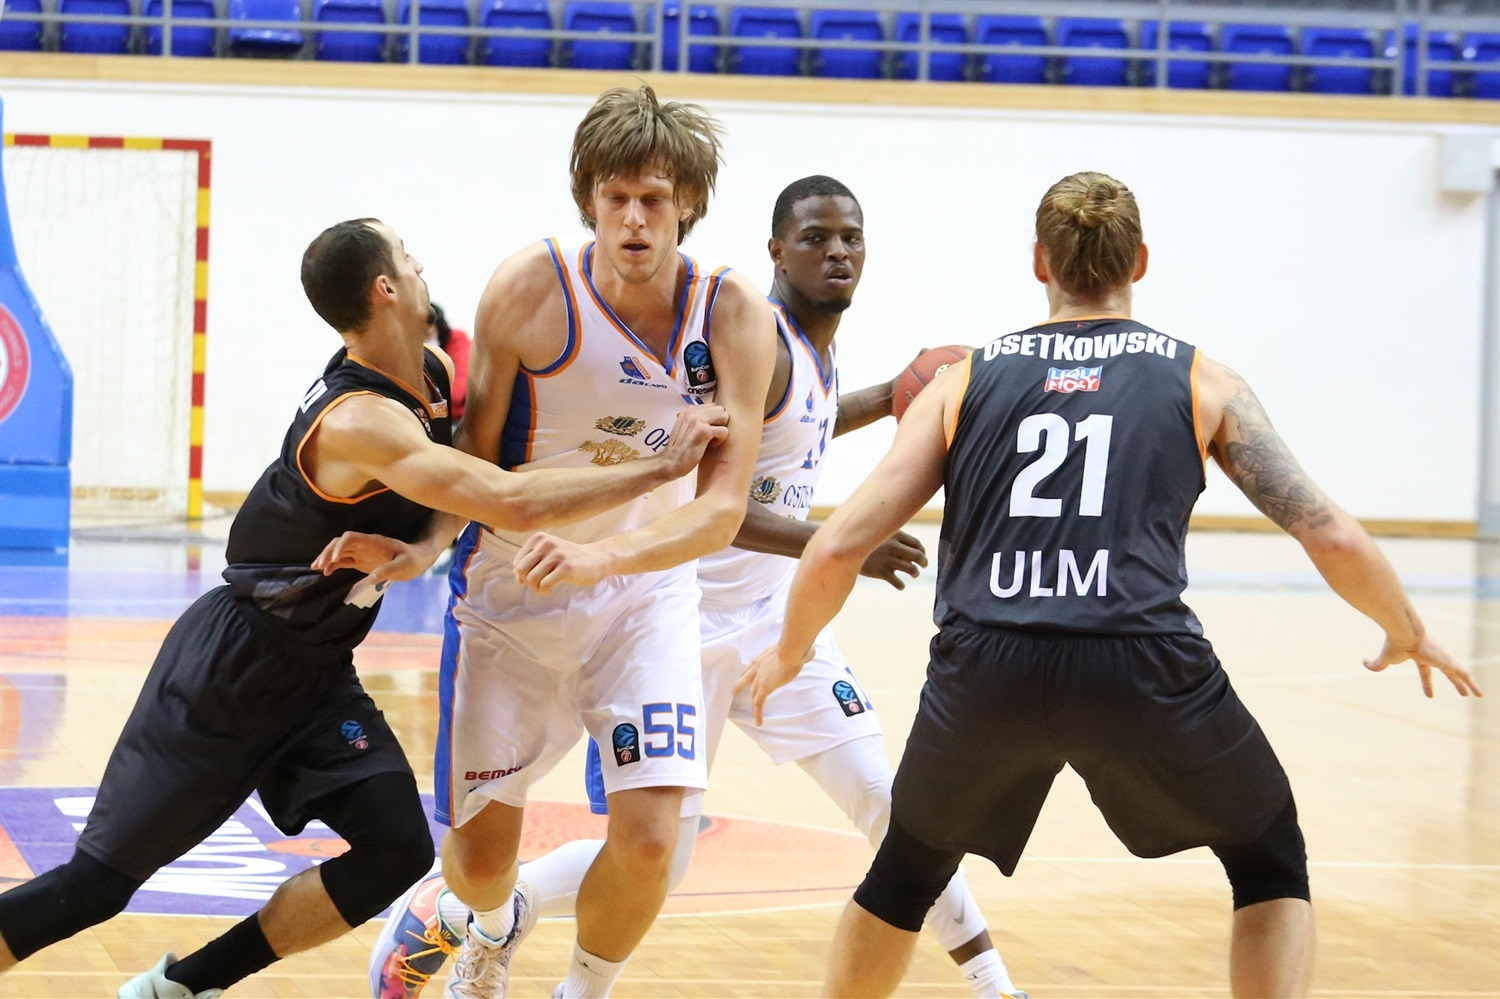 Uros Lukovic - Mornar Bar (photo Mornar) - EC20